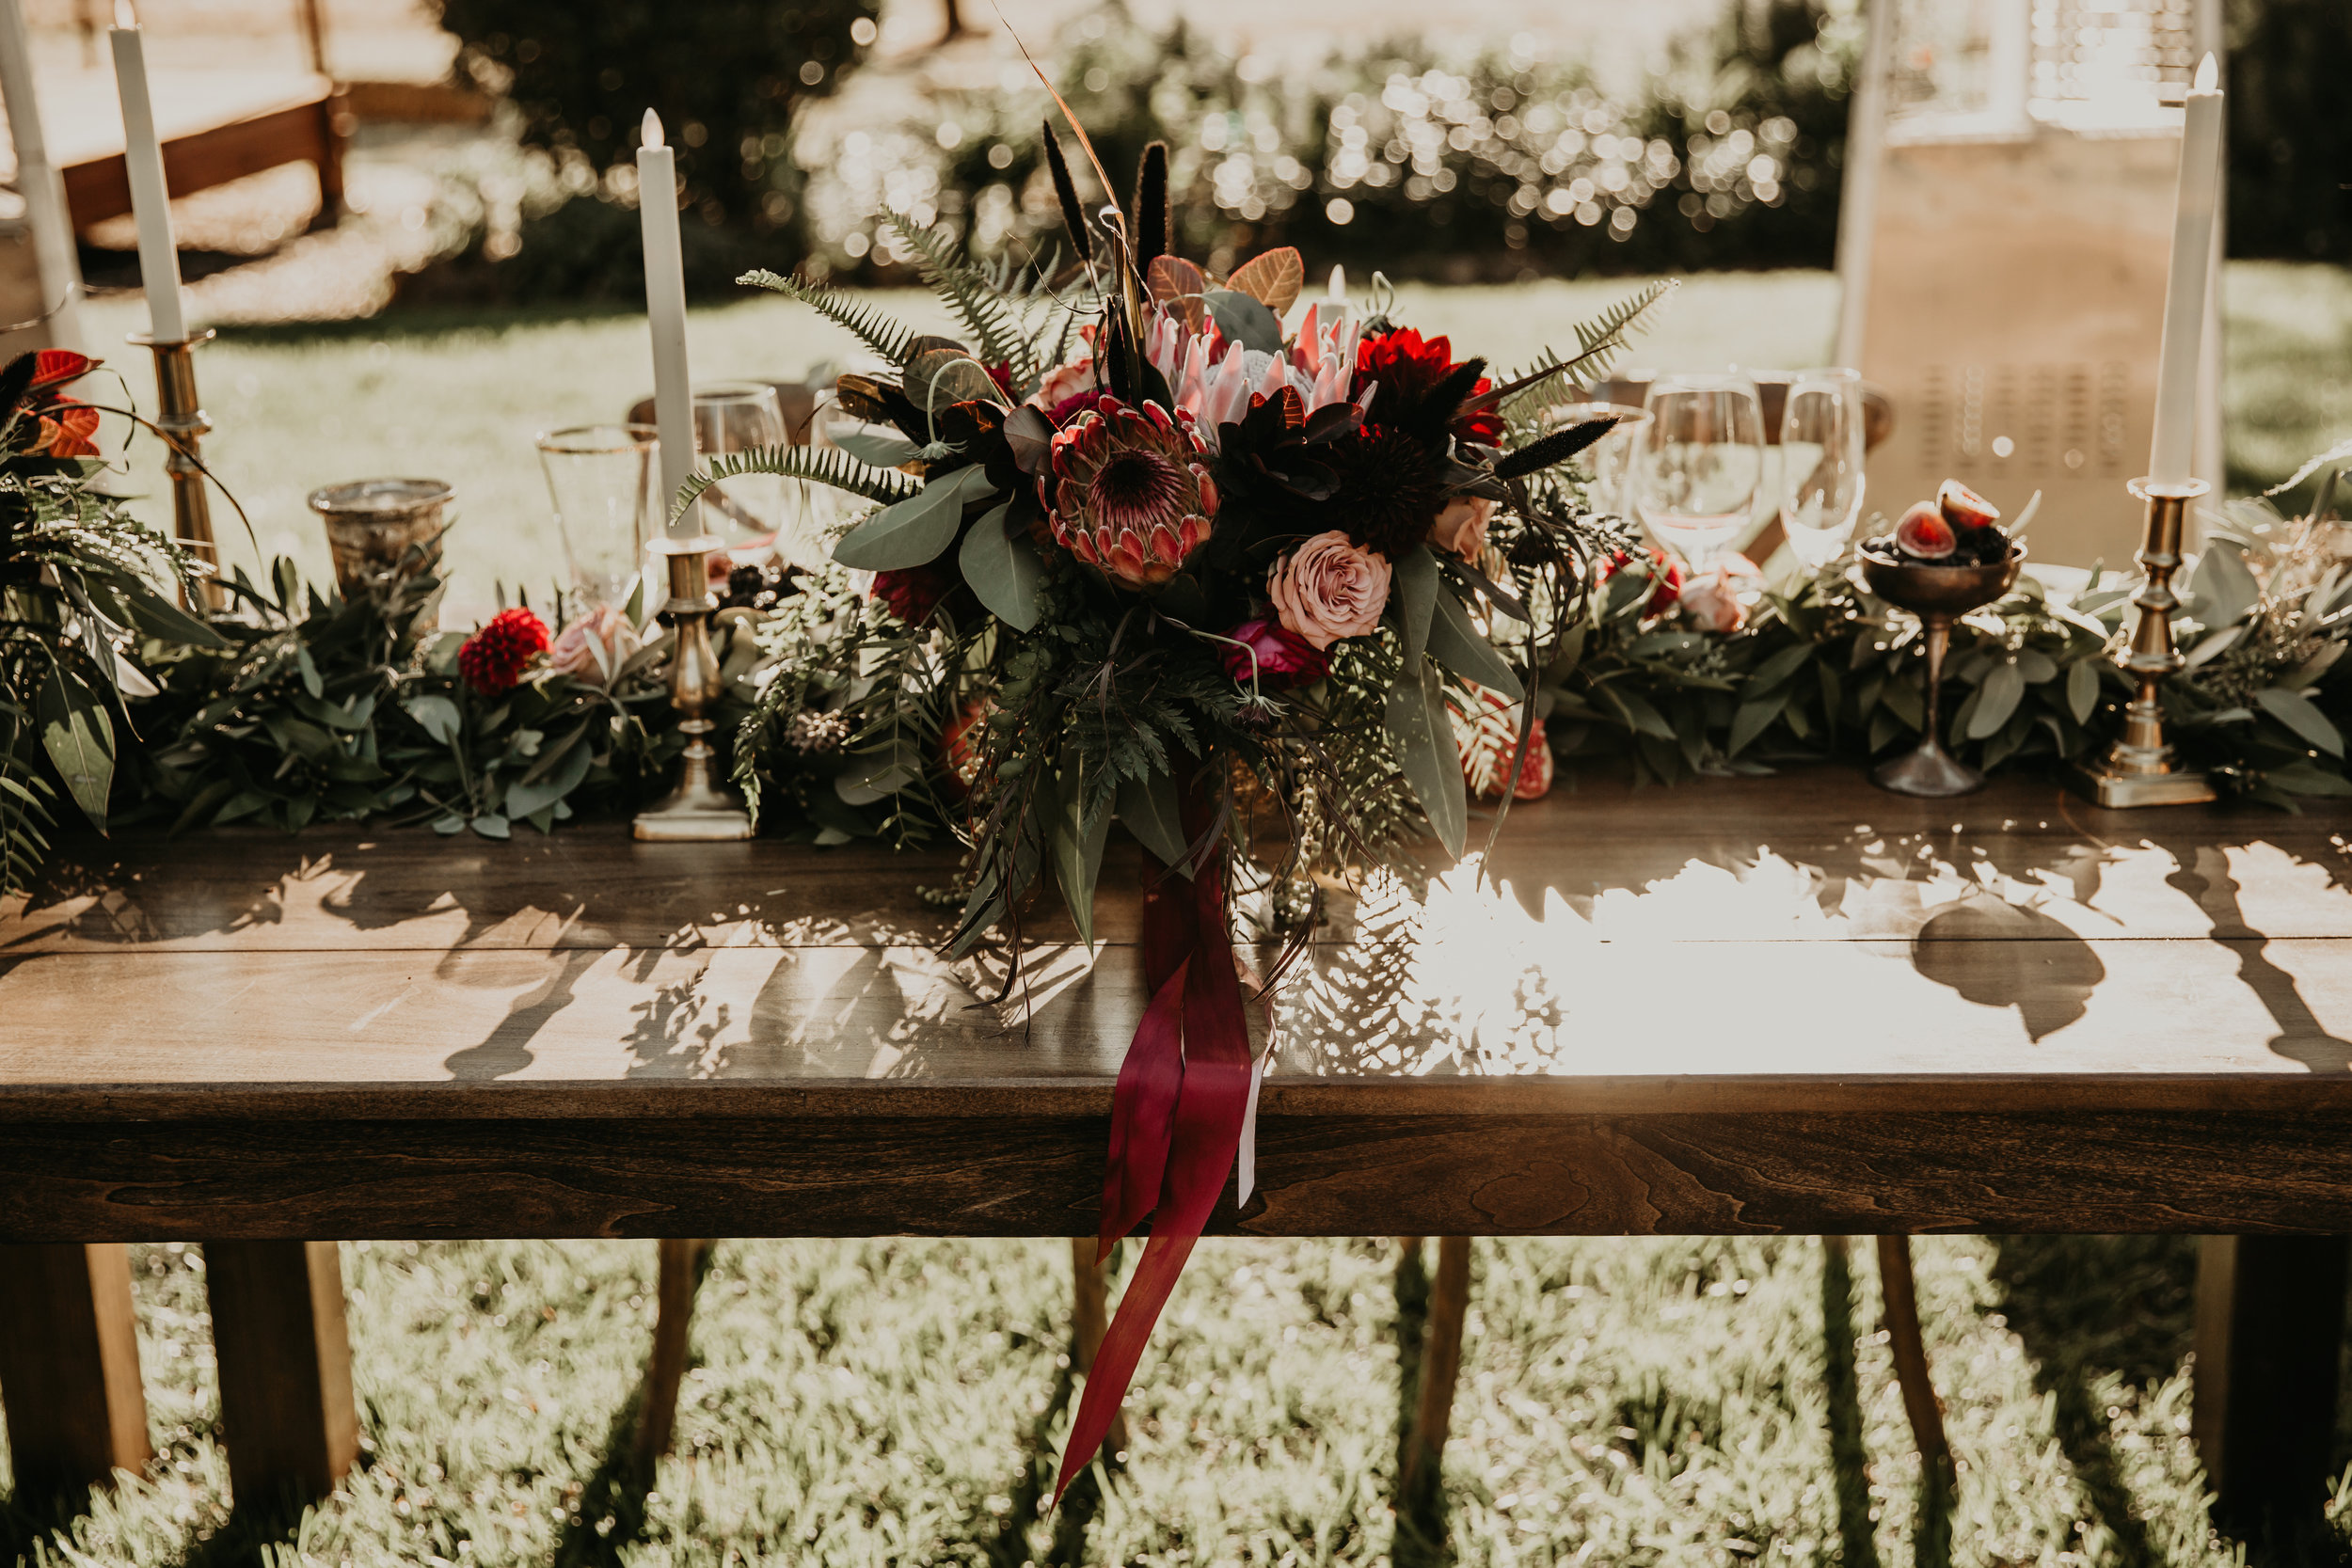 Moody flowers, cut fruit, candles, and silk ribbons for a Boho California wedding by Venn Floral with Whitney Nelson. Photographed by Vera Frances at Beltane Ranch.